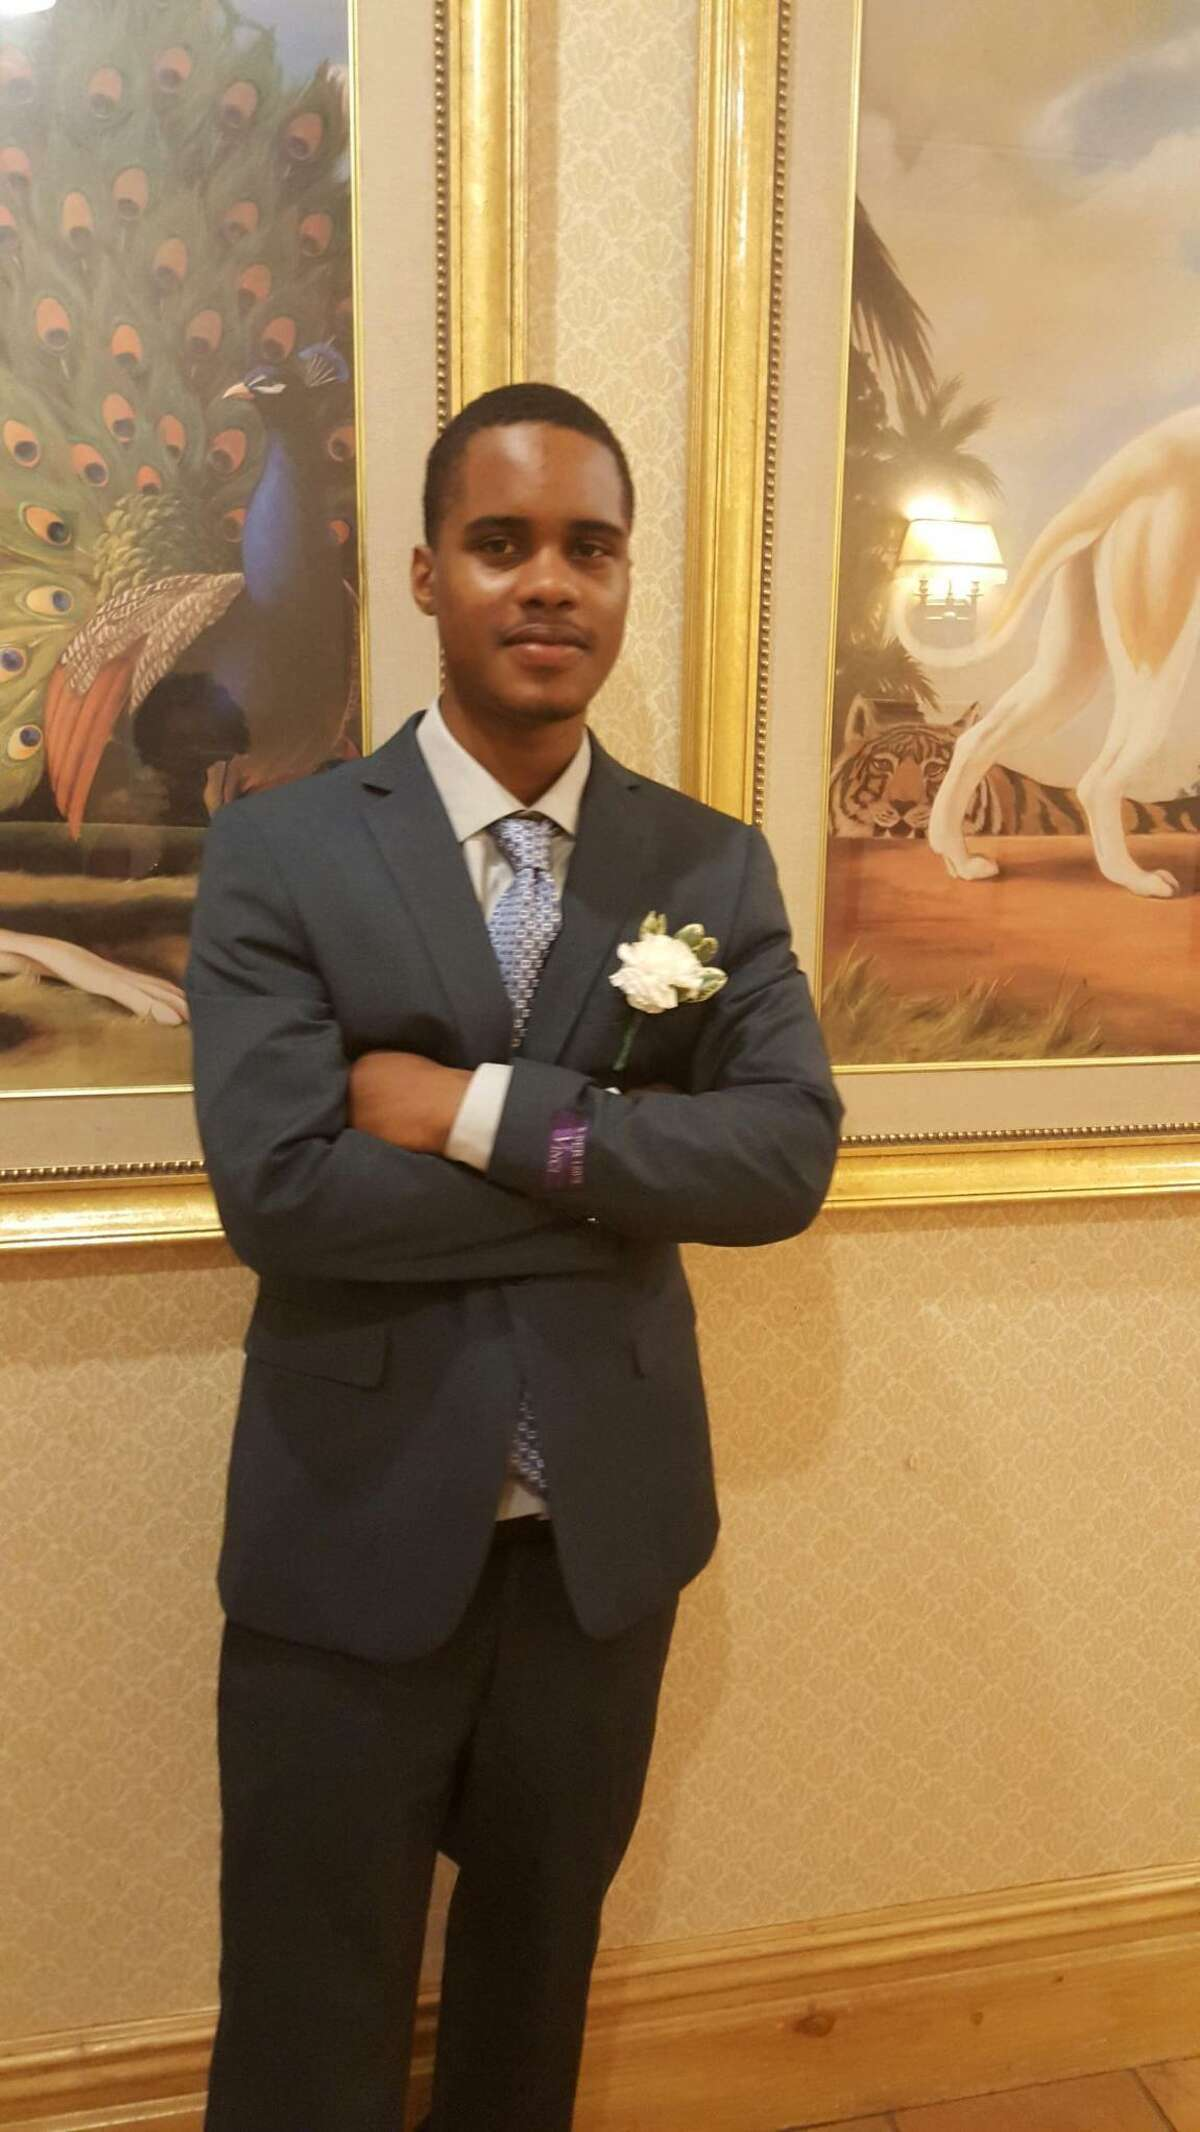 sTeven Barrier, 23, of Stamford died in police custody on Oct. 23, 2019 on his birthday.